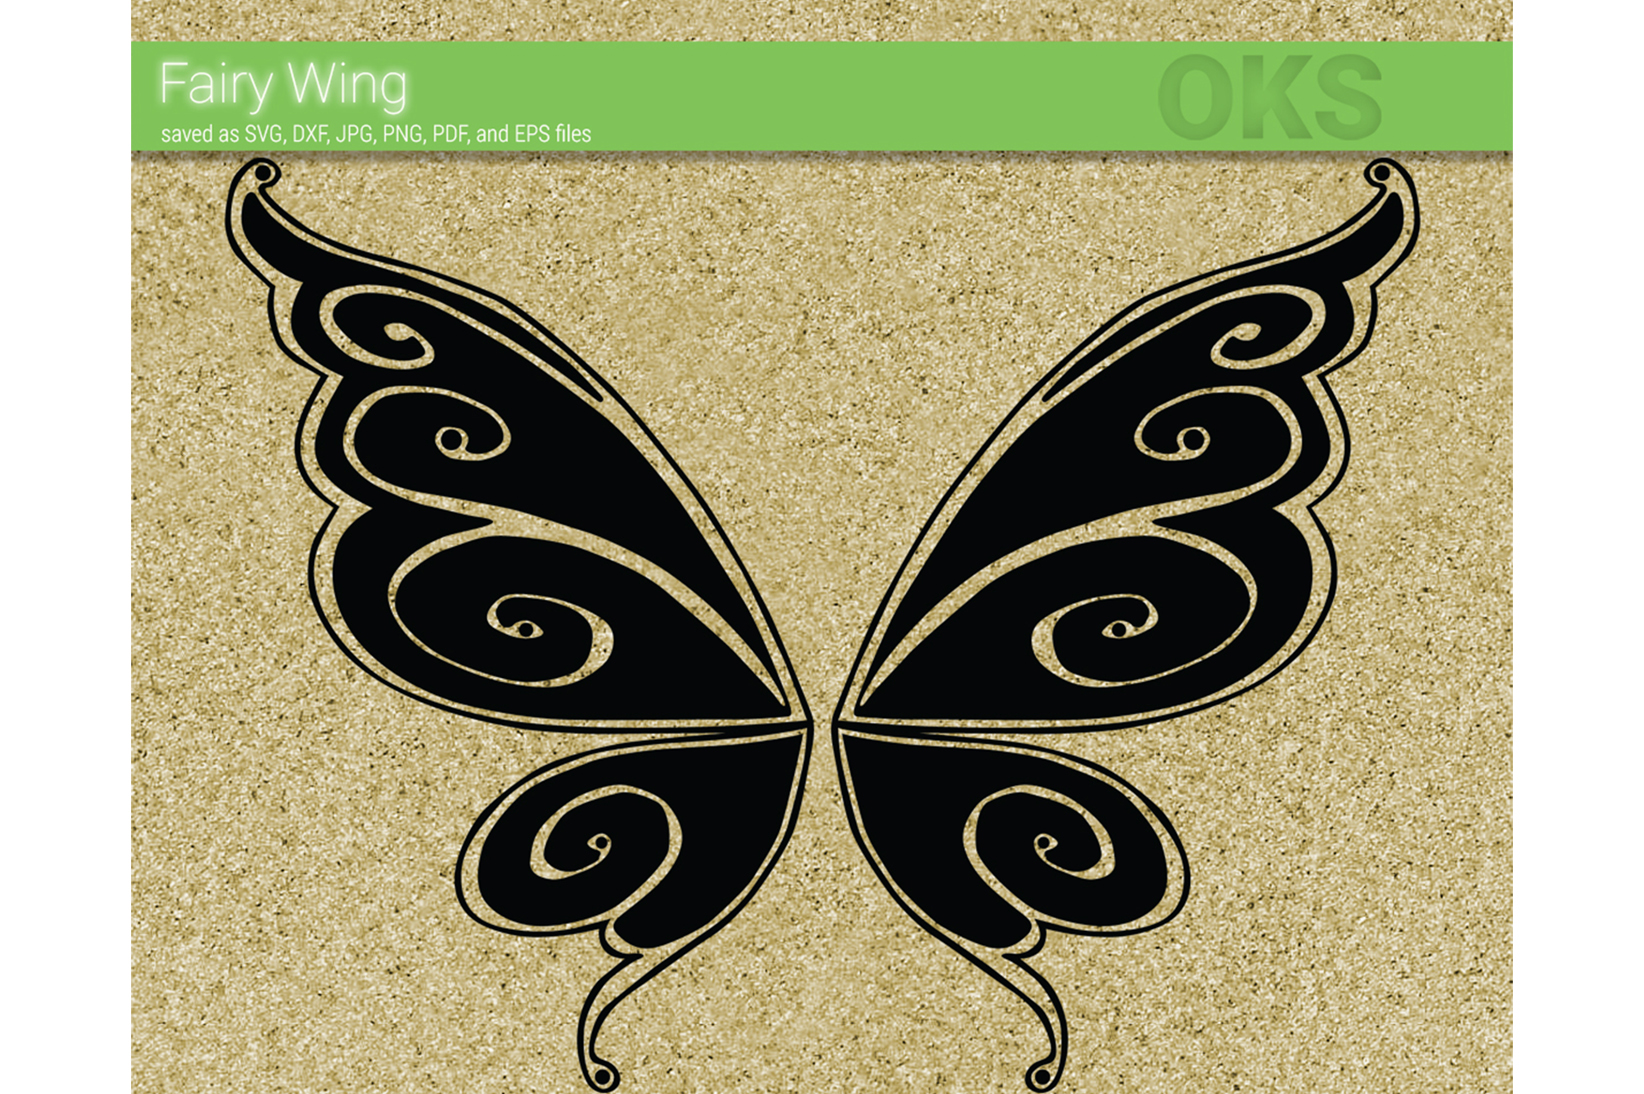 Download Free Fairy Wing Vector Graphic By Crafteroks Creative Fabrica for Cricut Explore, Silhouette and other cutting machines.